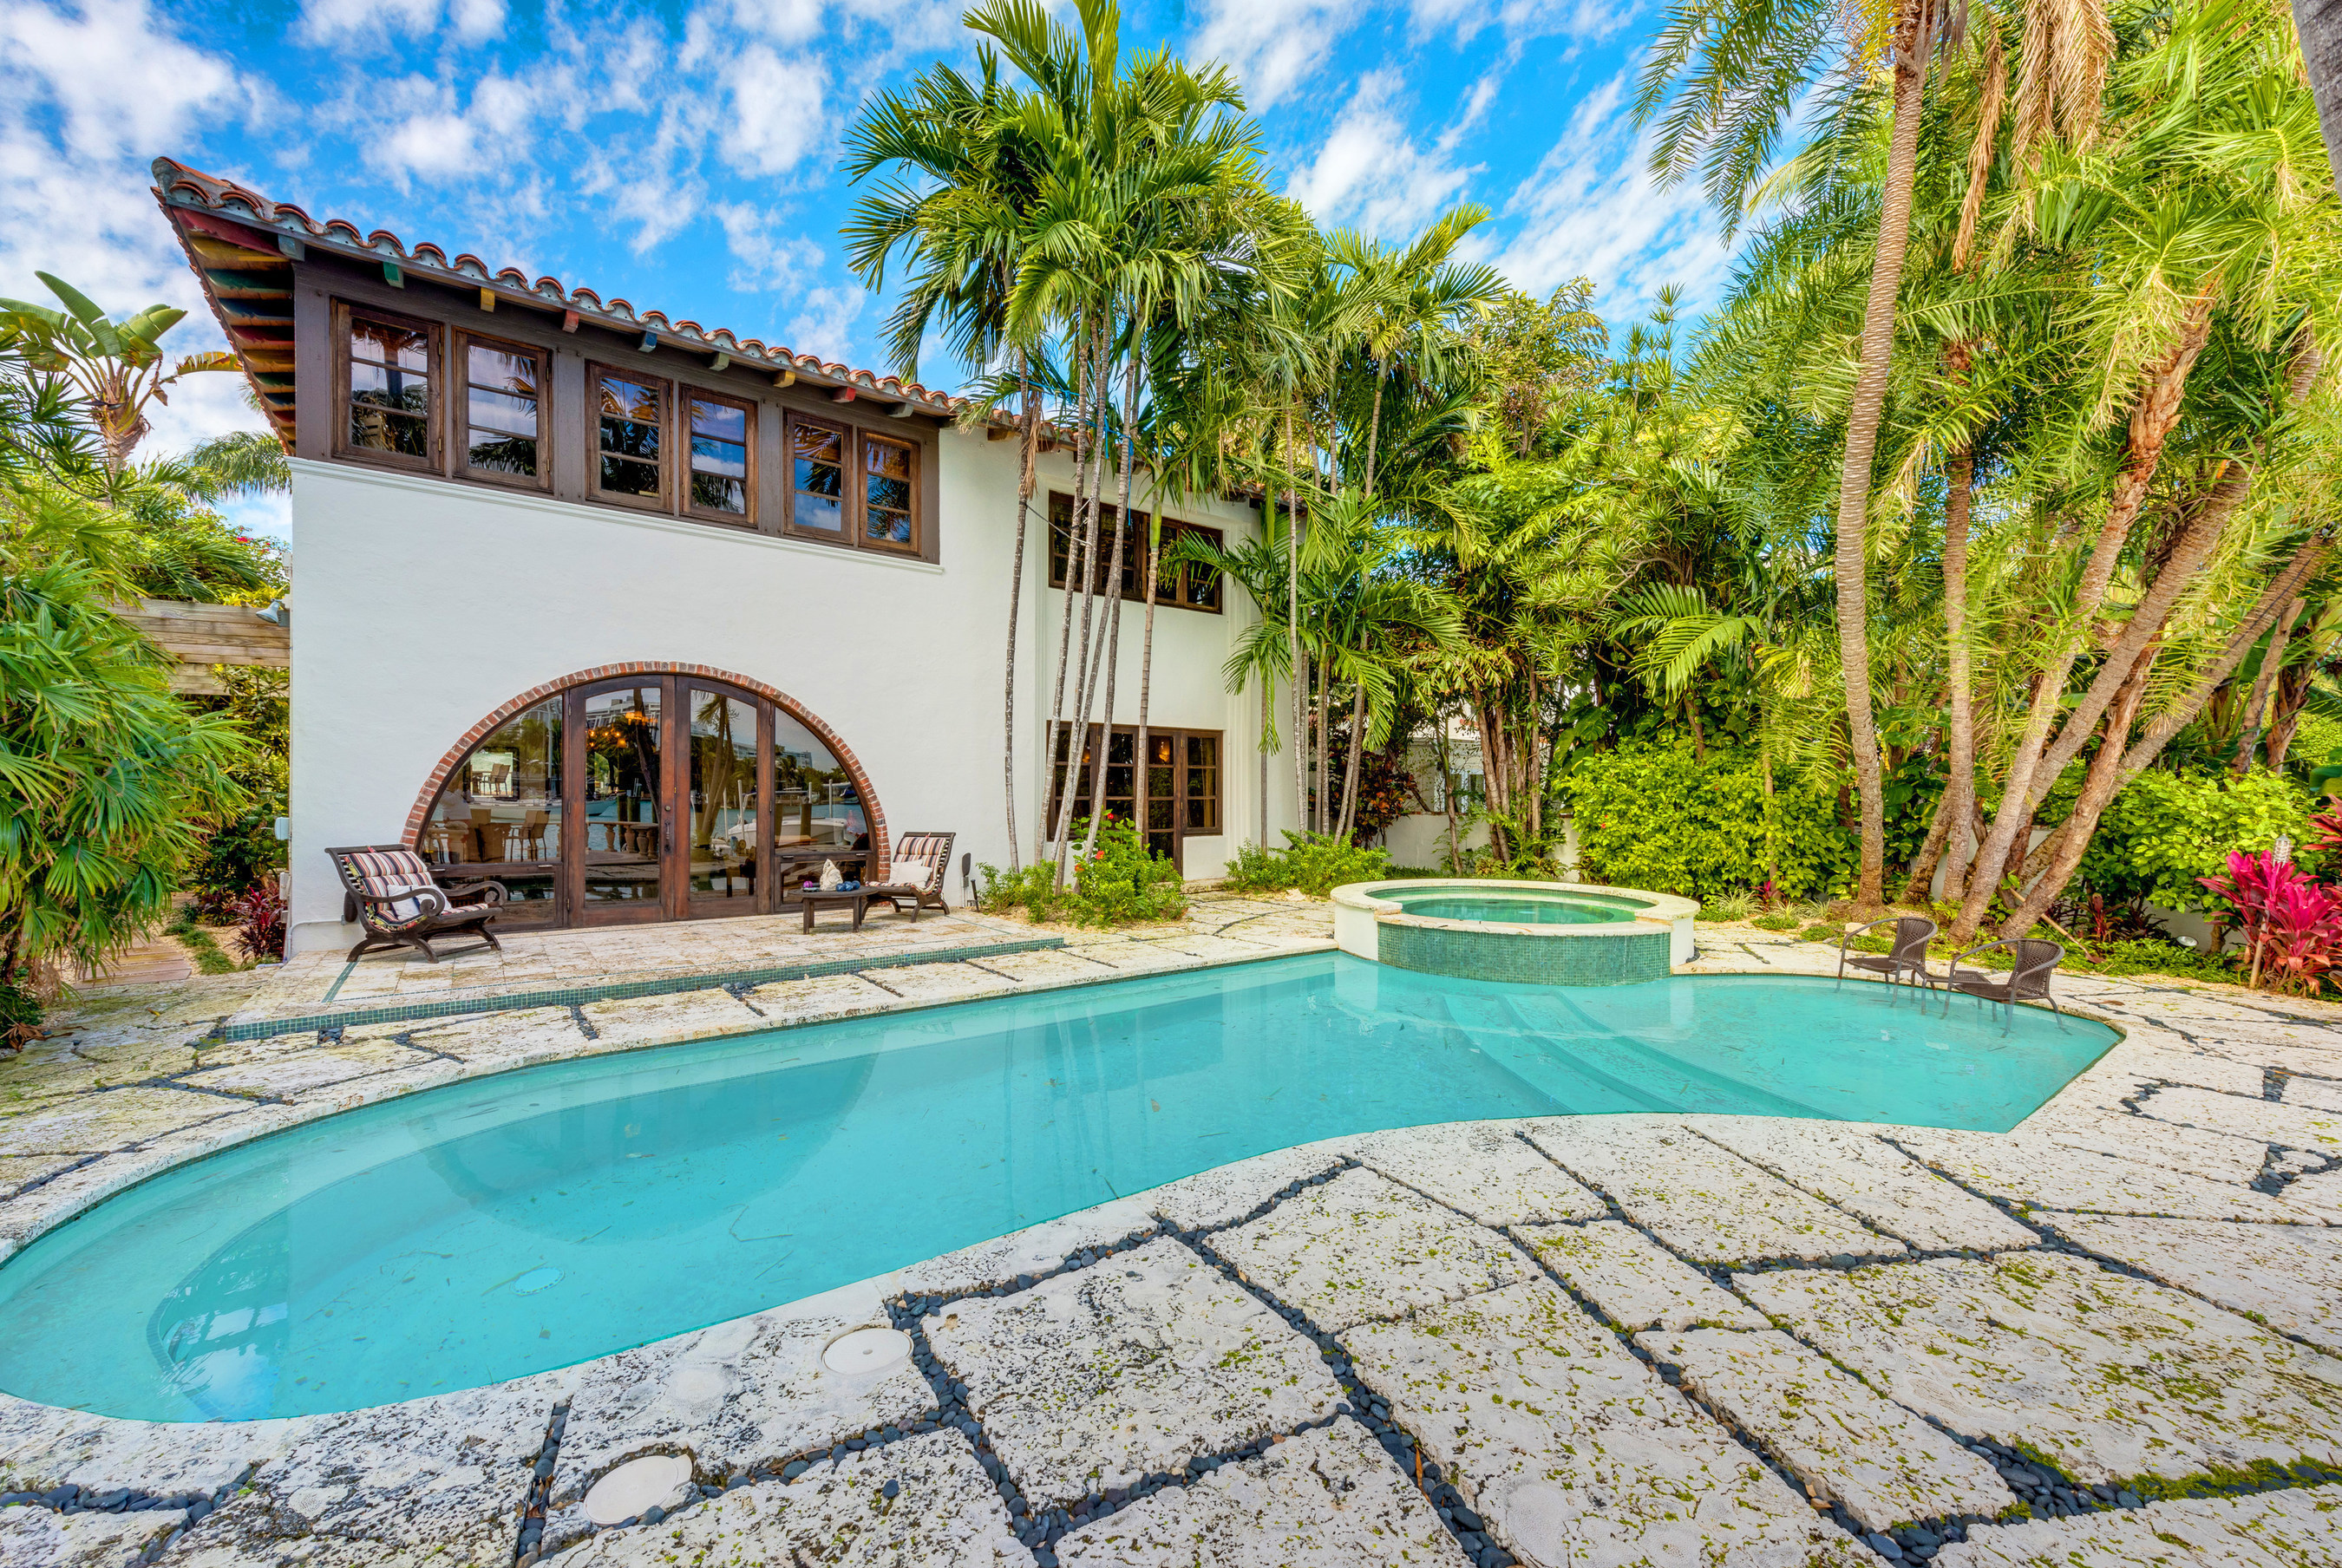 This multimillion-dollar waterfront estate in Miami Beach's Venetian Islands was sold at a live auction on May 6, 2016. Miami-based auction house Platinum Luxury Auctions managed the luxury real estate auction sale, in cooperation with listing brokerage EWM Realty International. Discover more at PlatinumLuxuryAuctions.com.